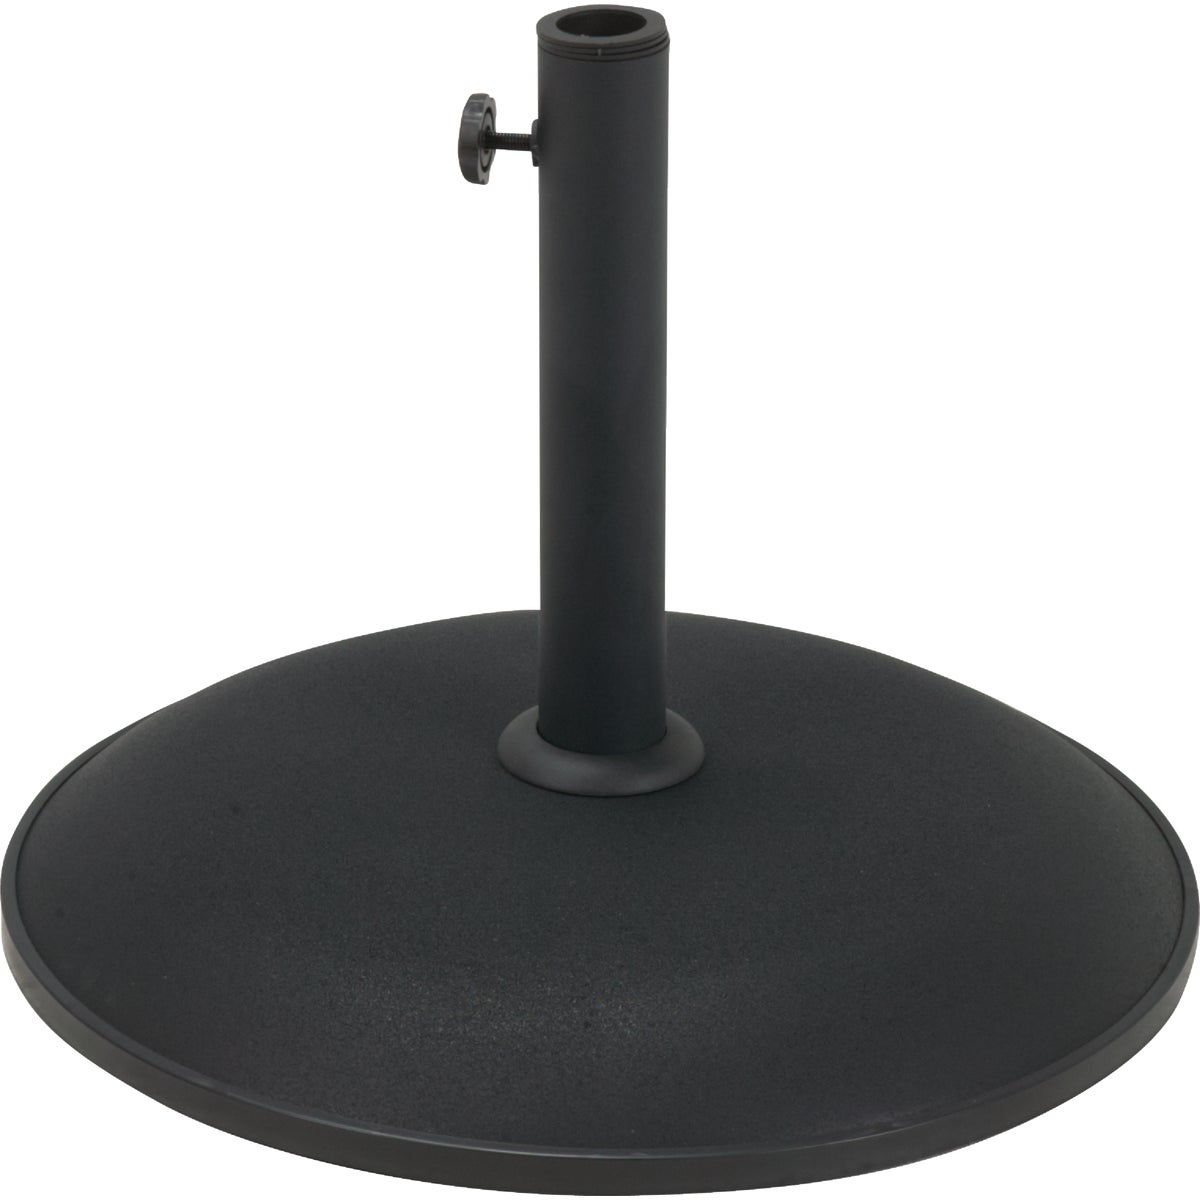 33# BLK CONCRETE BASE - SL-USC-01B by Do it Best